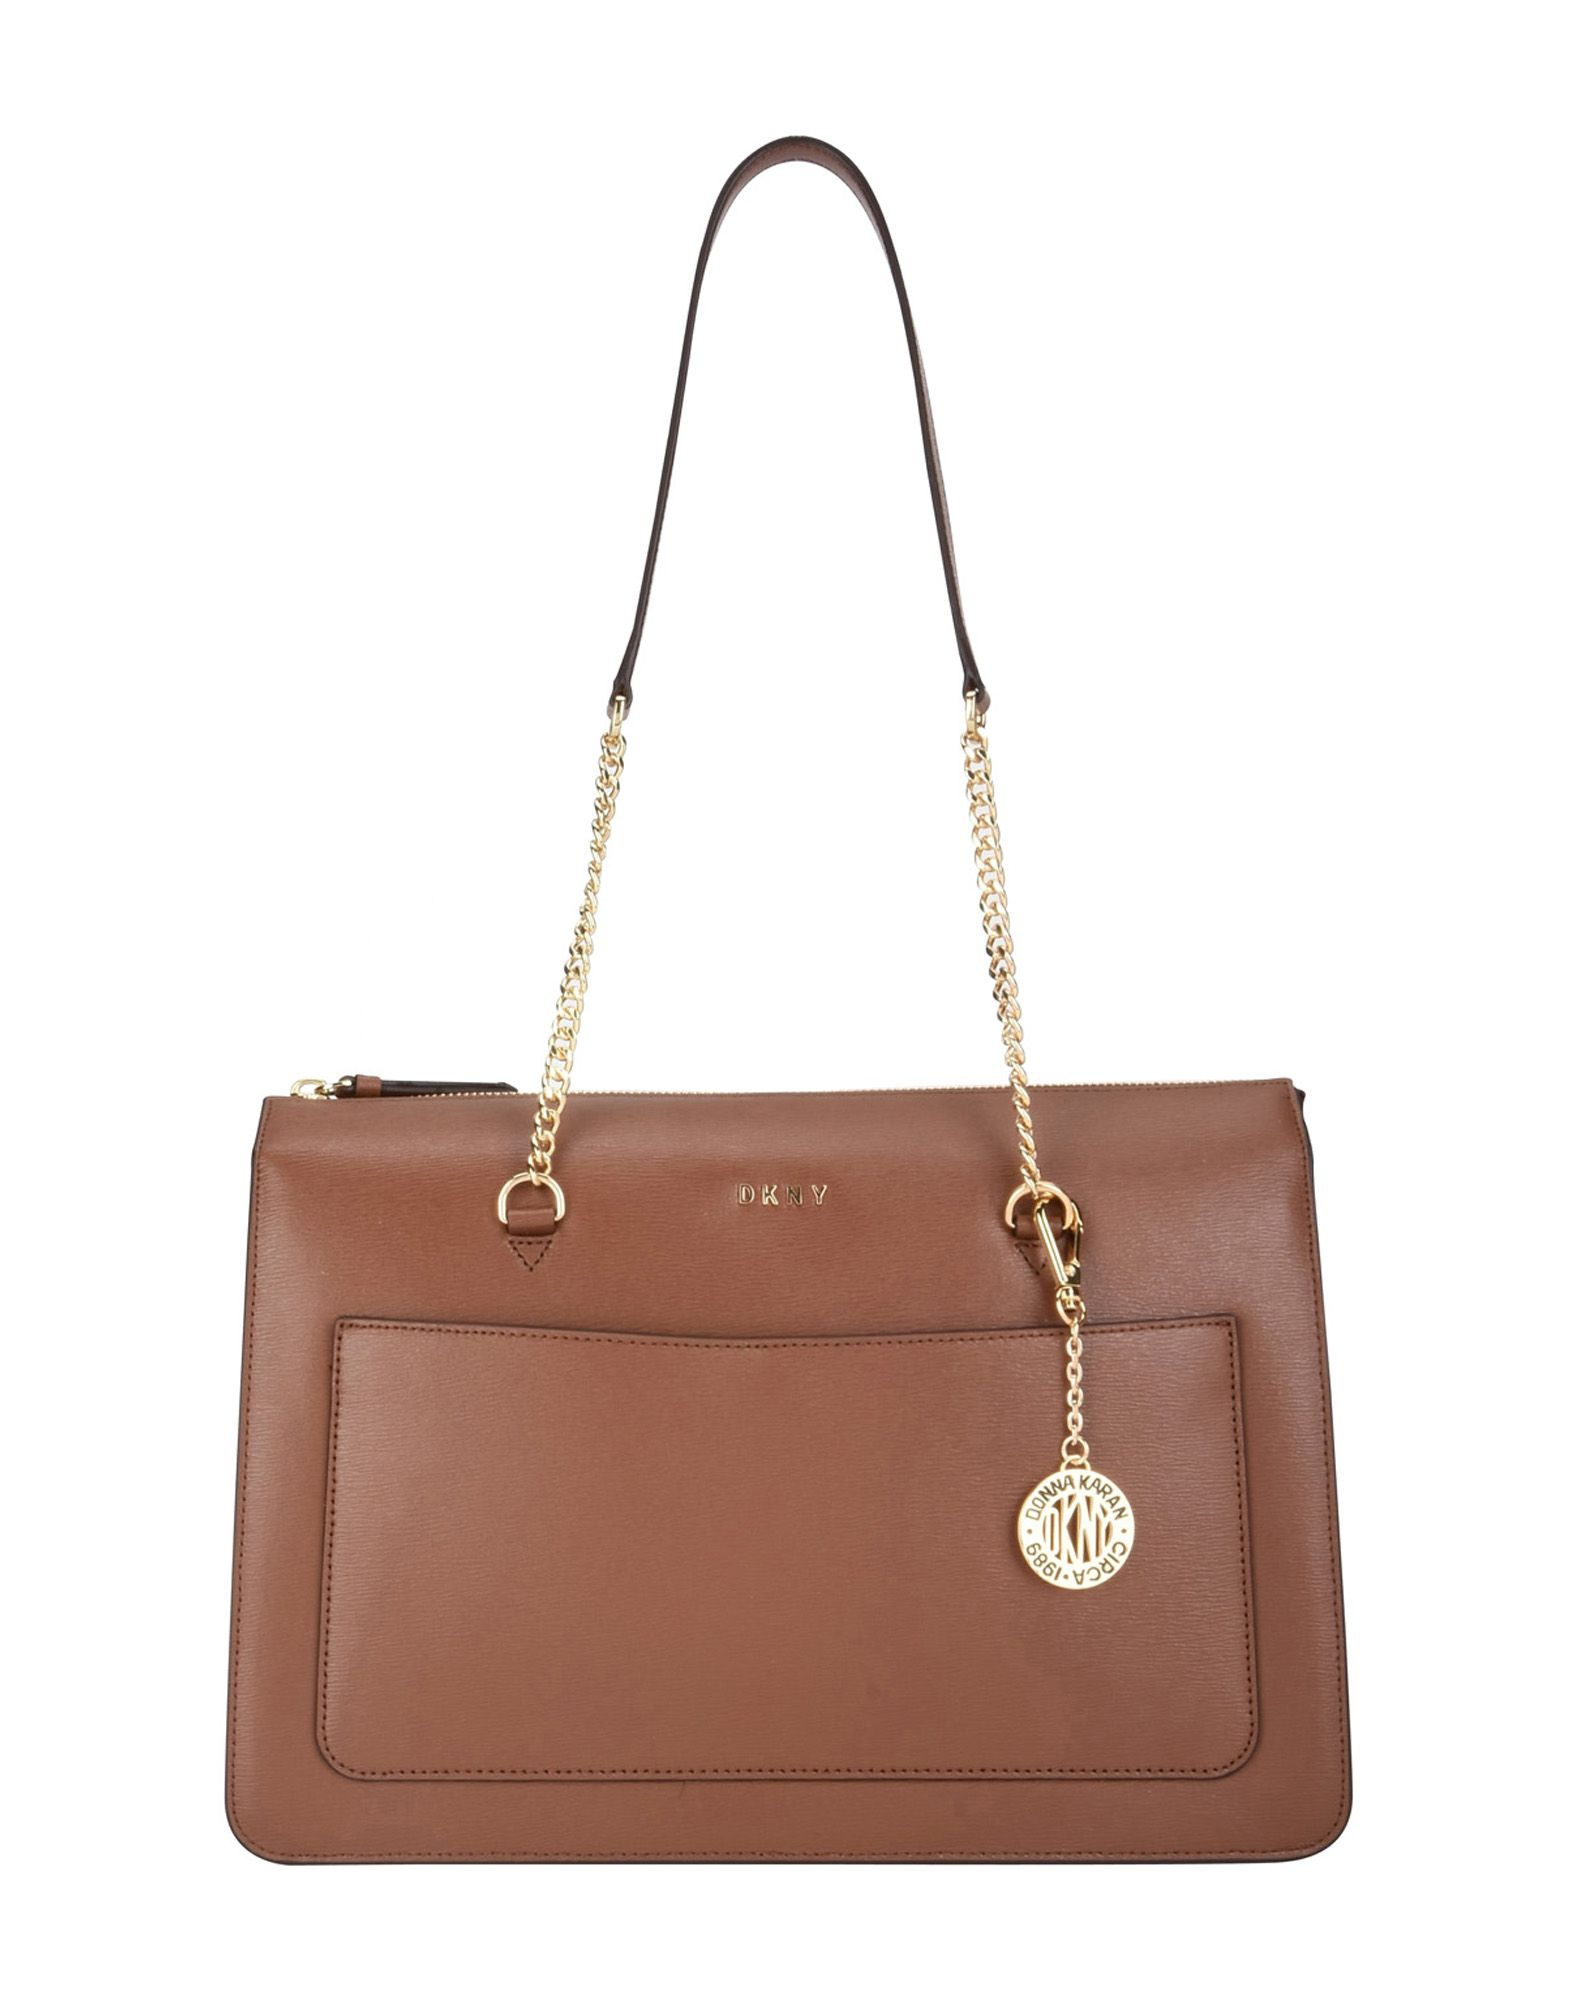 a456955bda0 DKNY SHOULDER BAG, BROWN   ModeSens